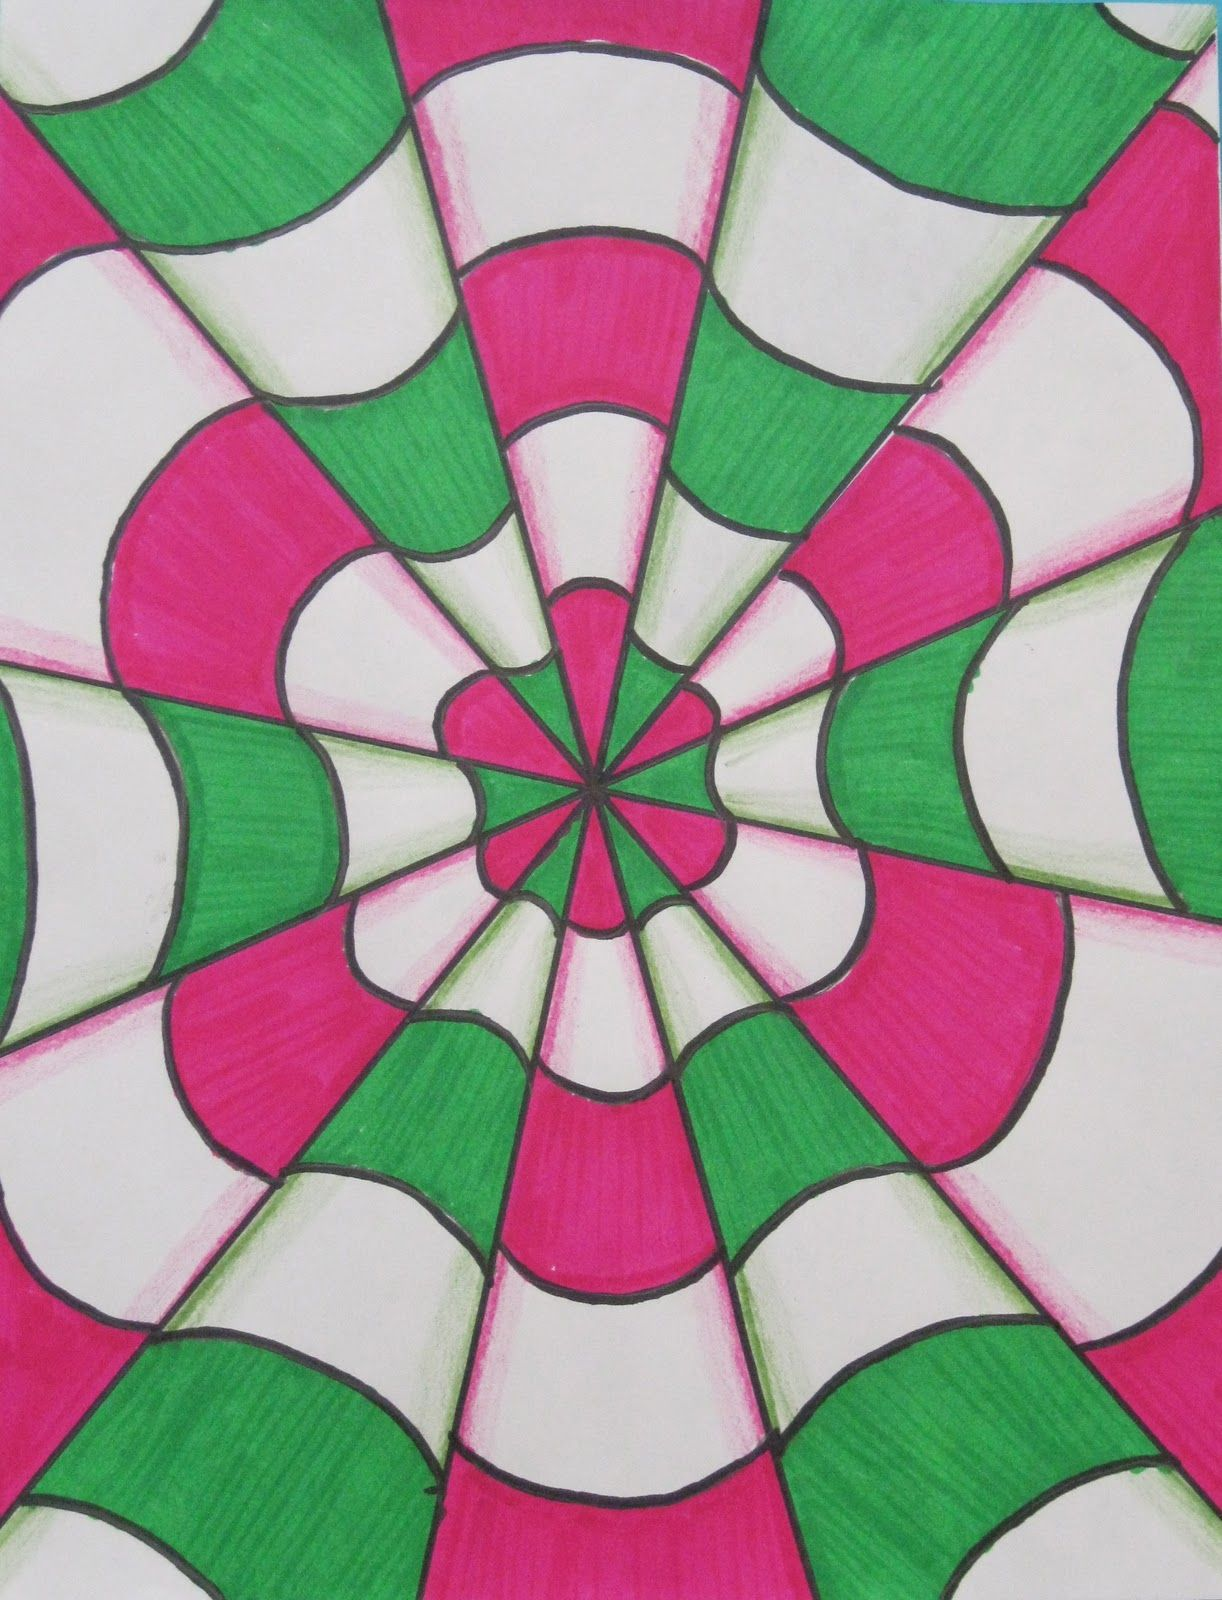 Op art uses color to create - Optical Illusion Art Rundes Room Optical Illusions In Art Class